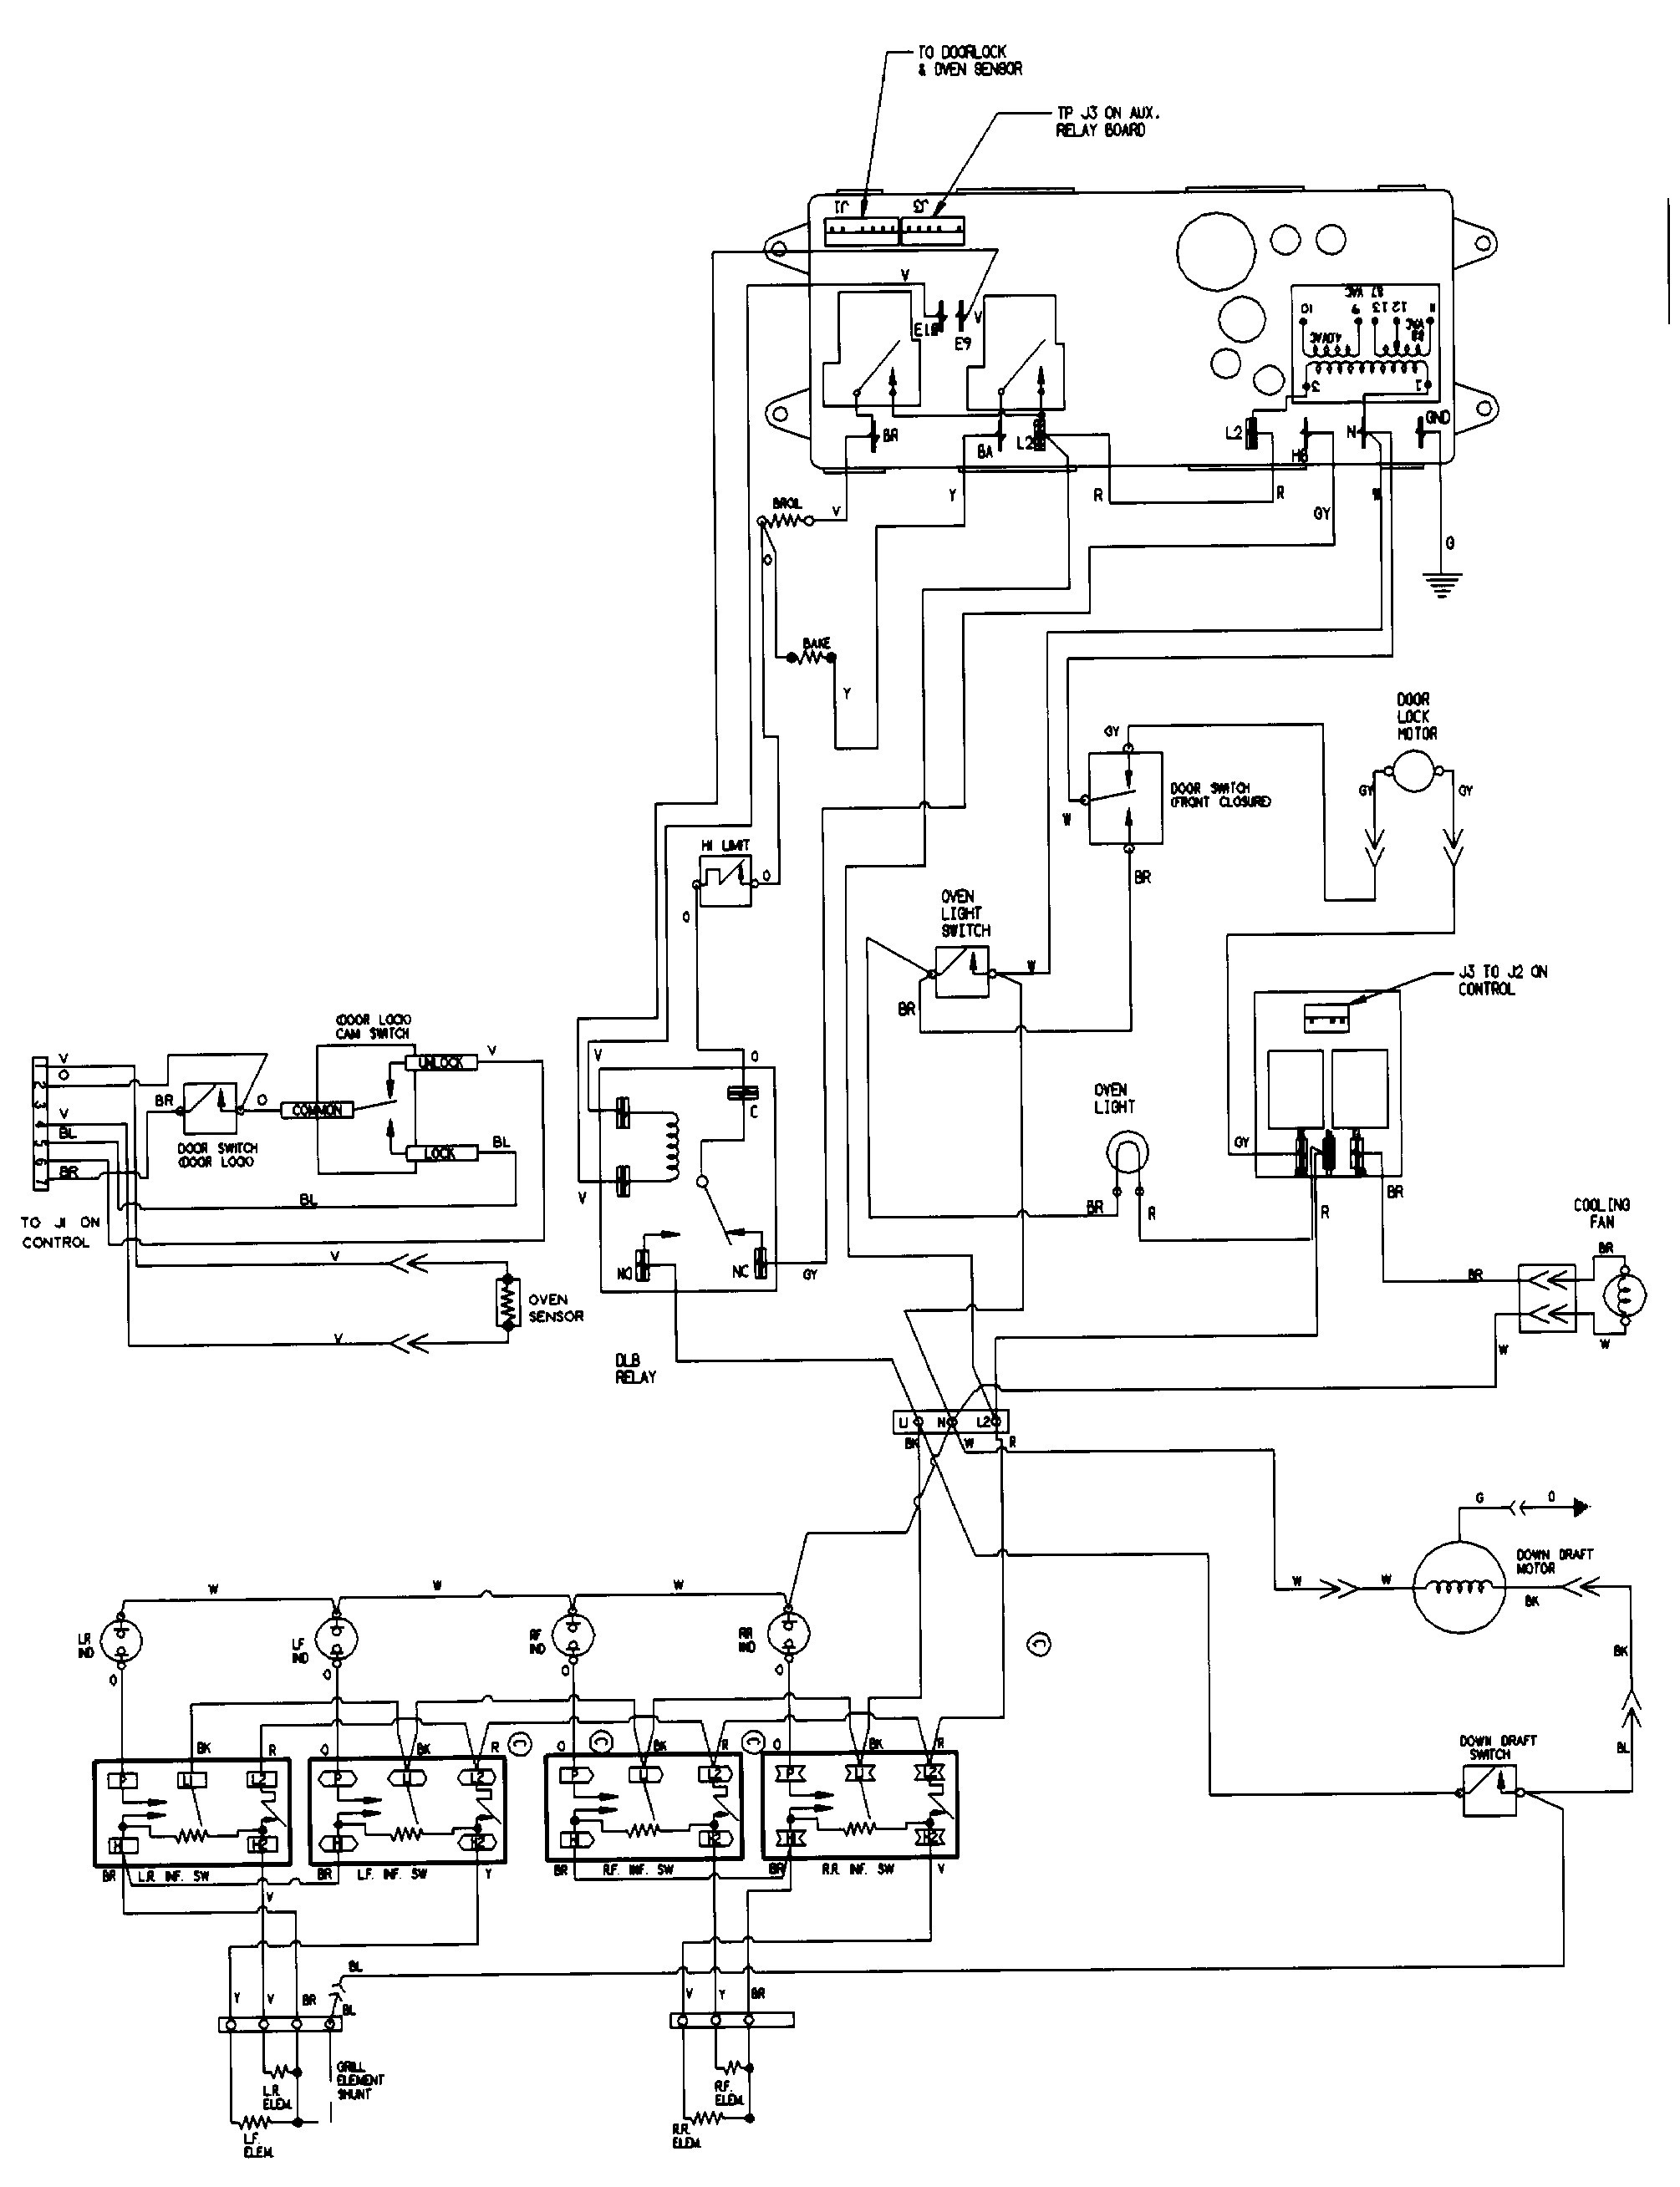 95 Jettum Engine Diagram